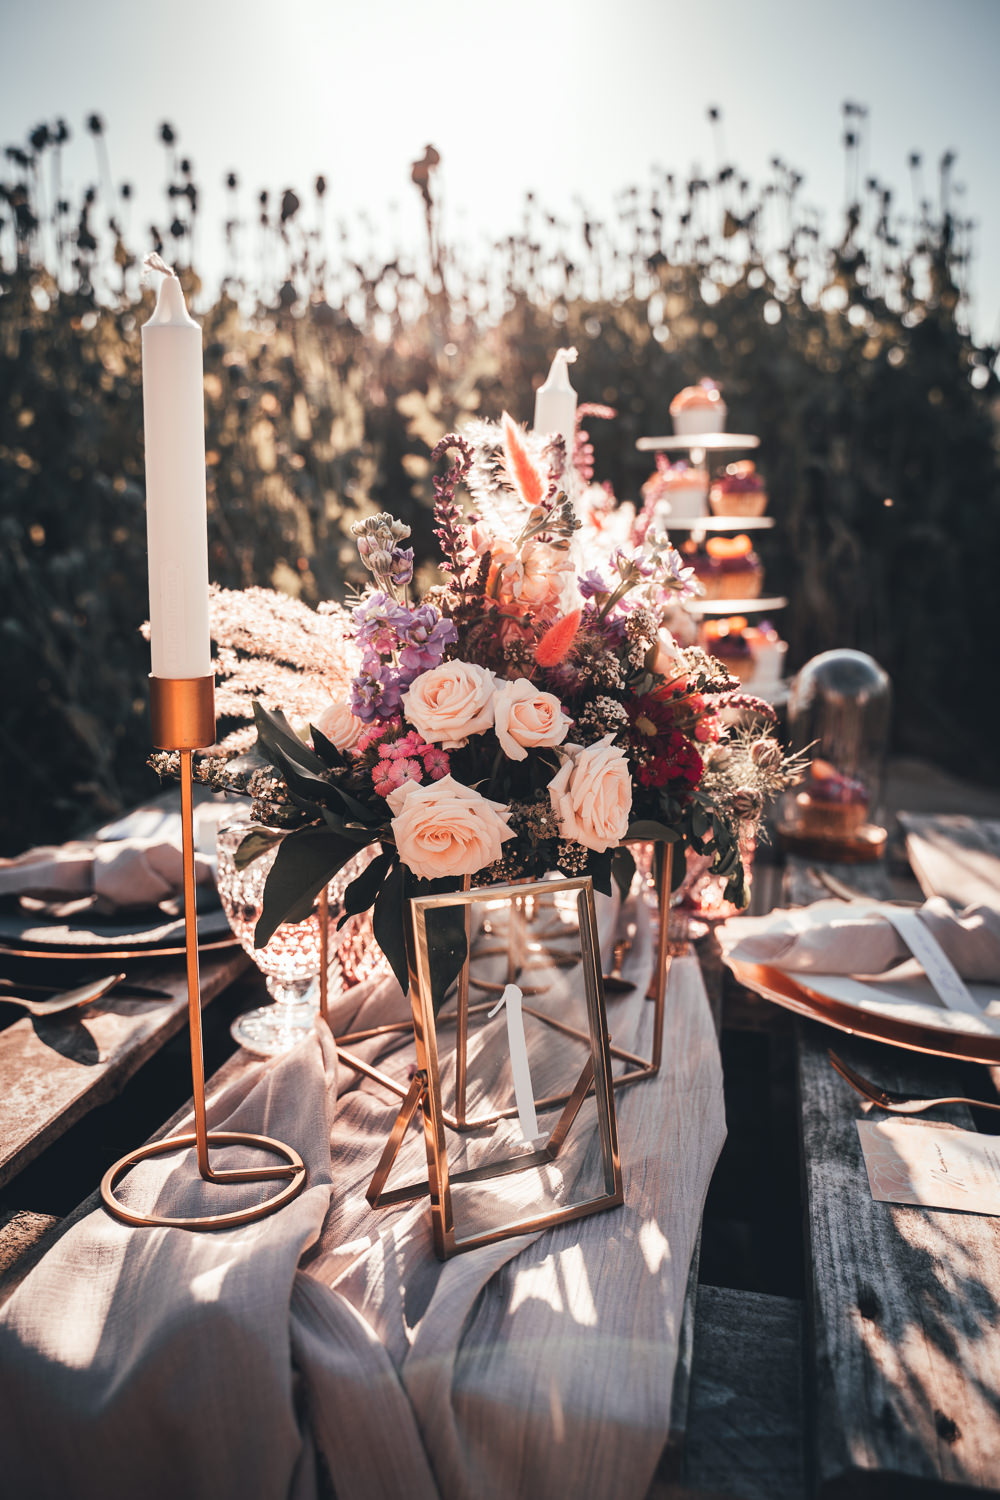 Wooden Pallet Table Tablescape Decor Flowers Candles Rustic Centrepiece Poppy Field Wedding NT Creatives